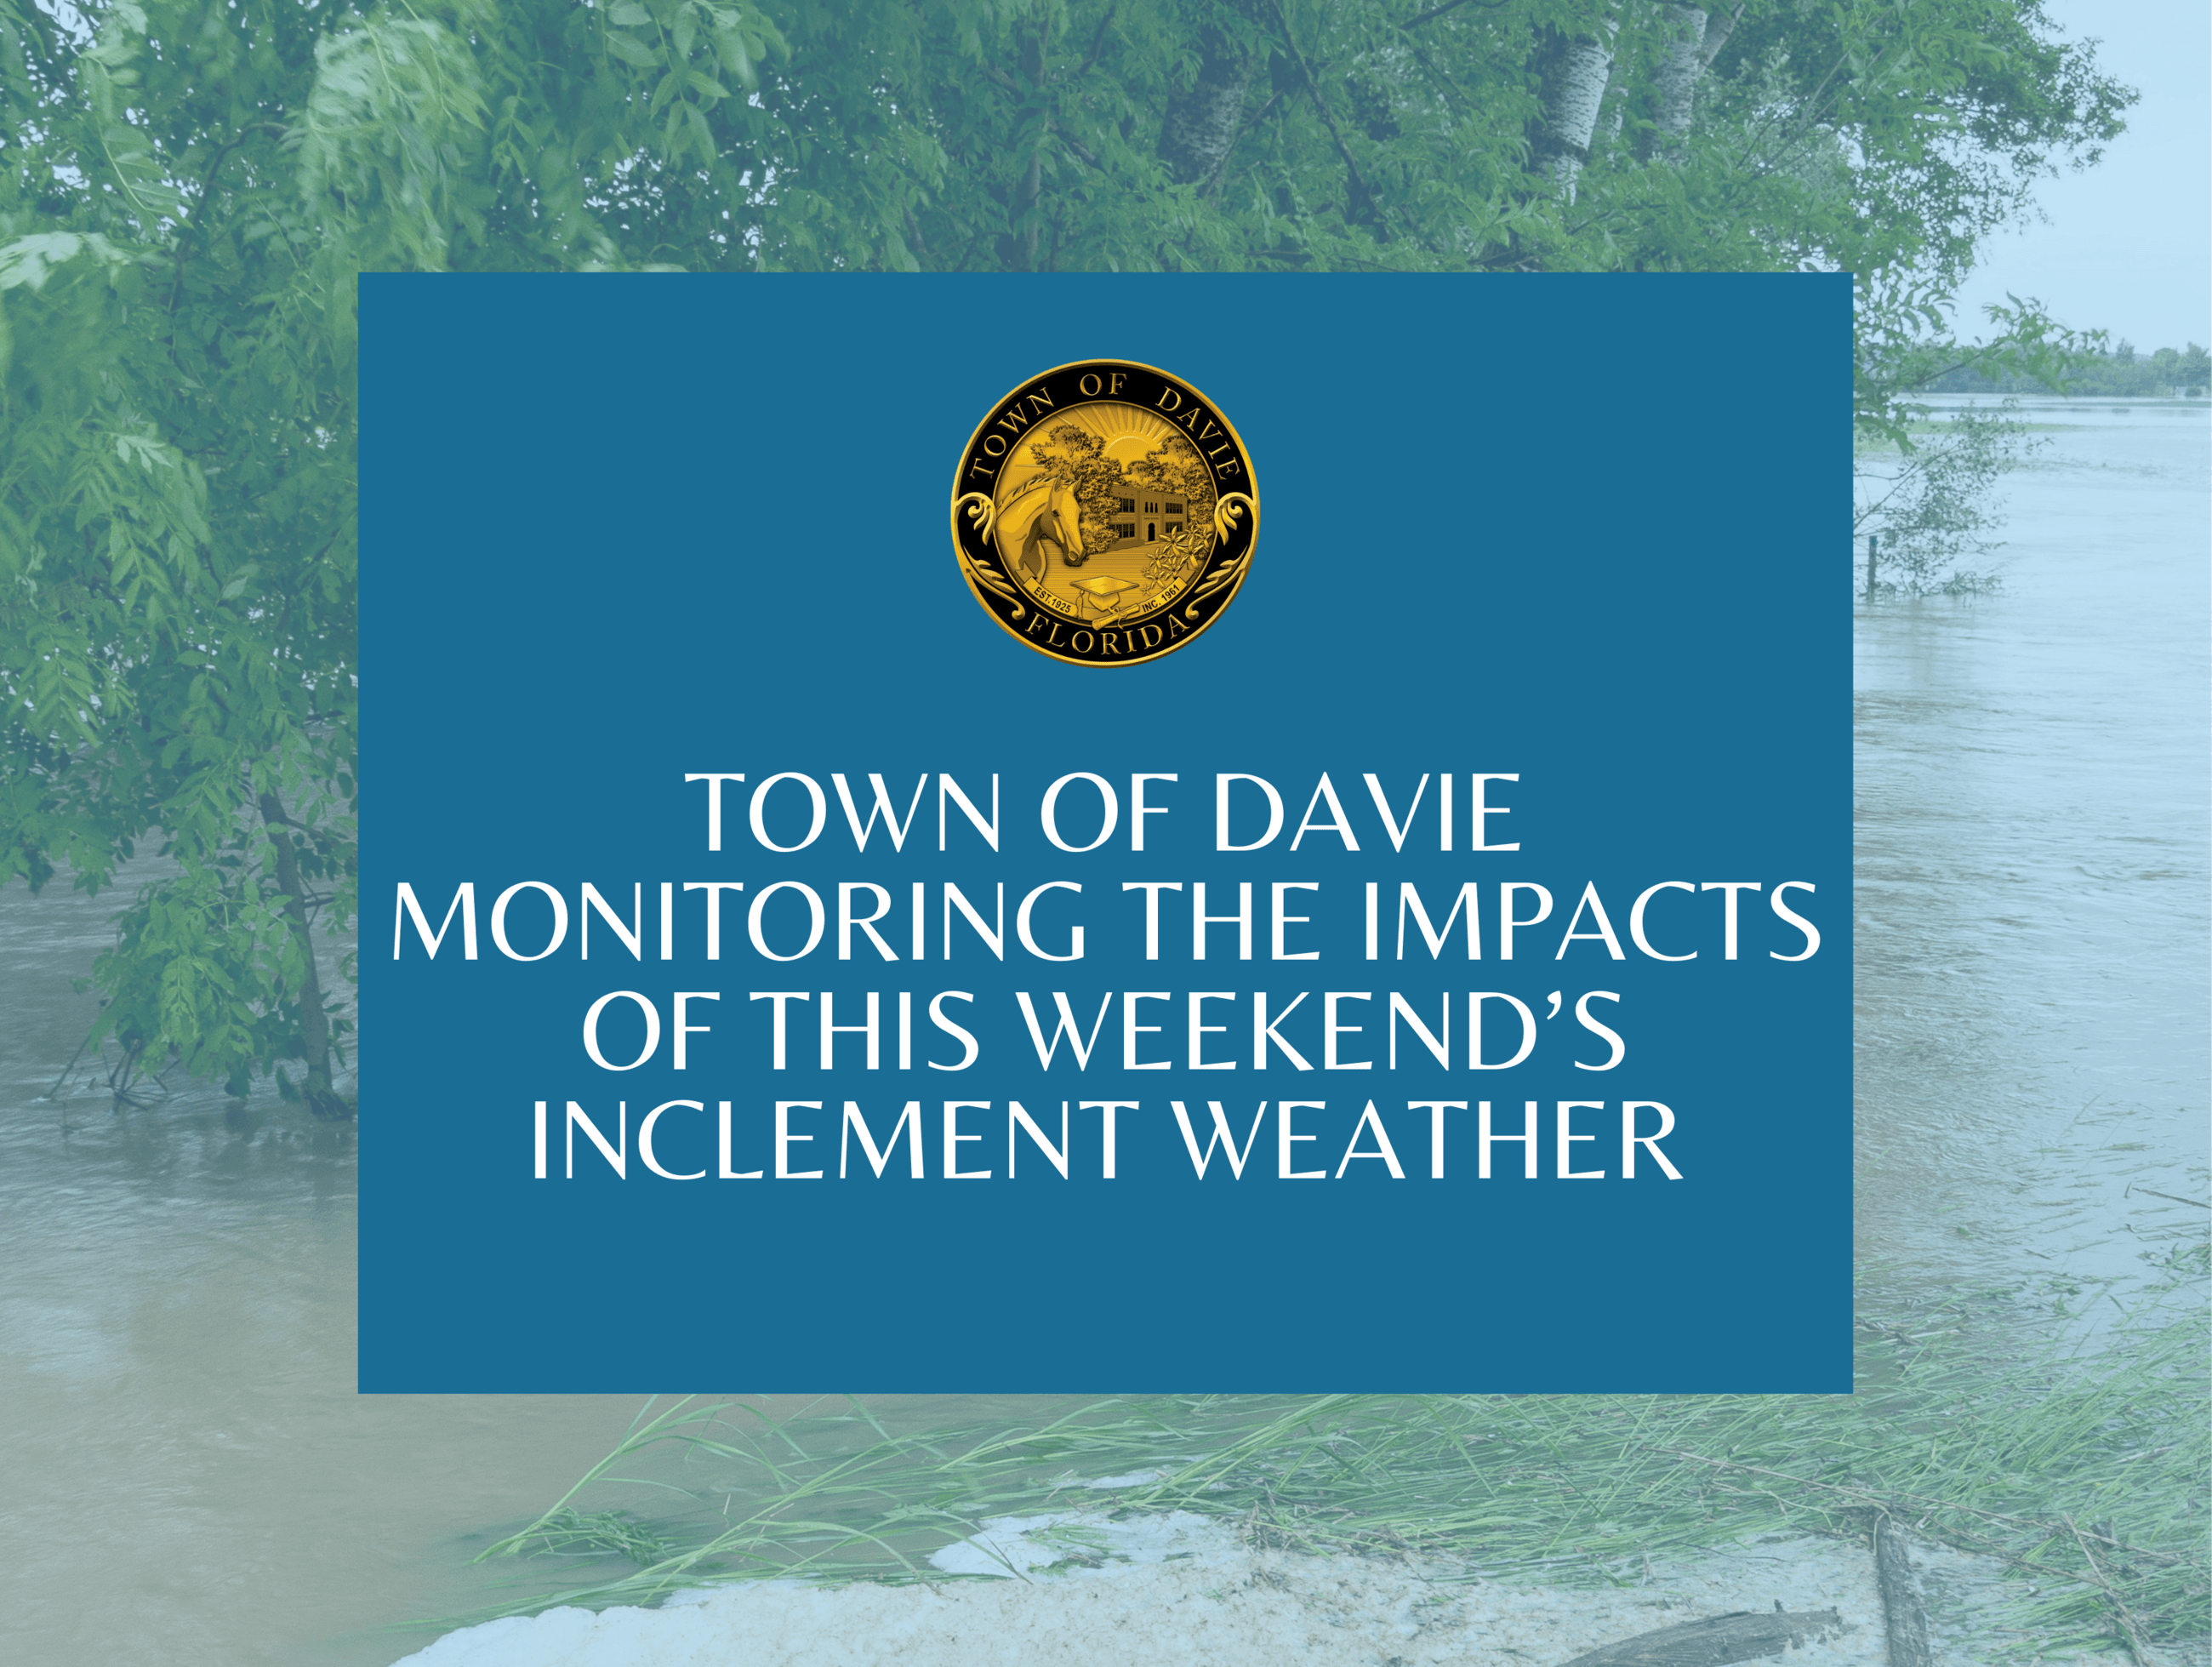 Town of Davie Continues to Monitor the Impacts of This Weekends Inclement Weather